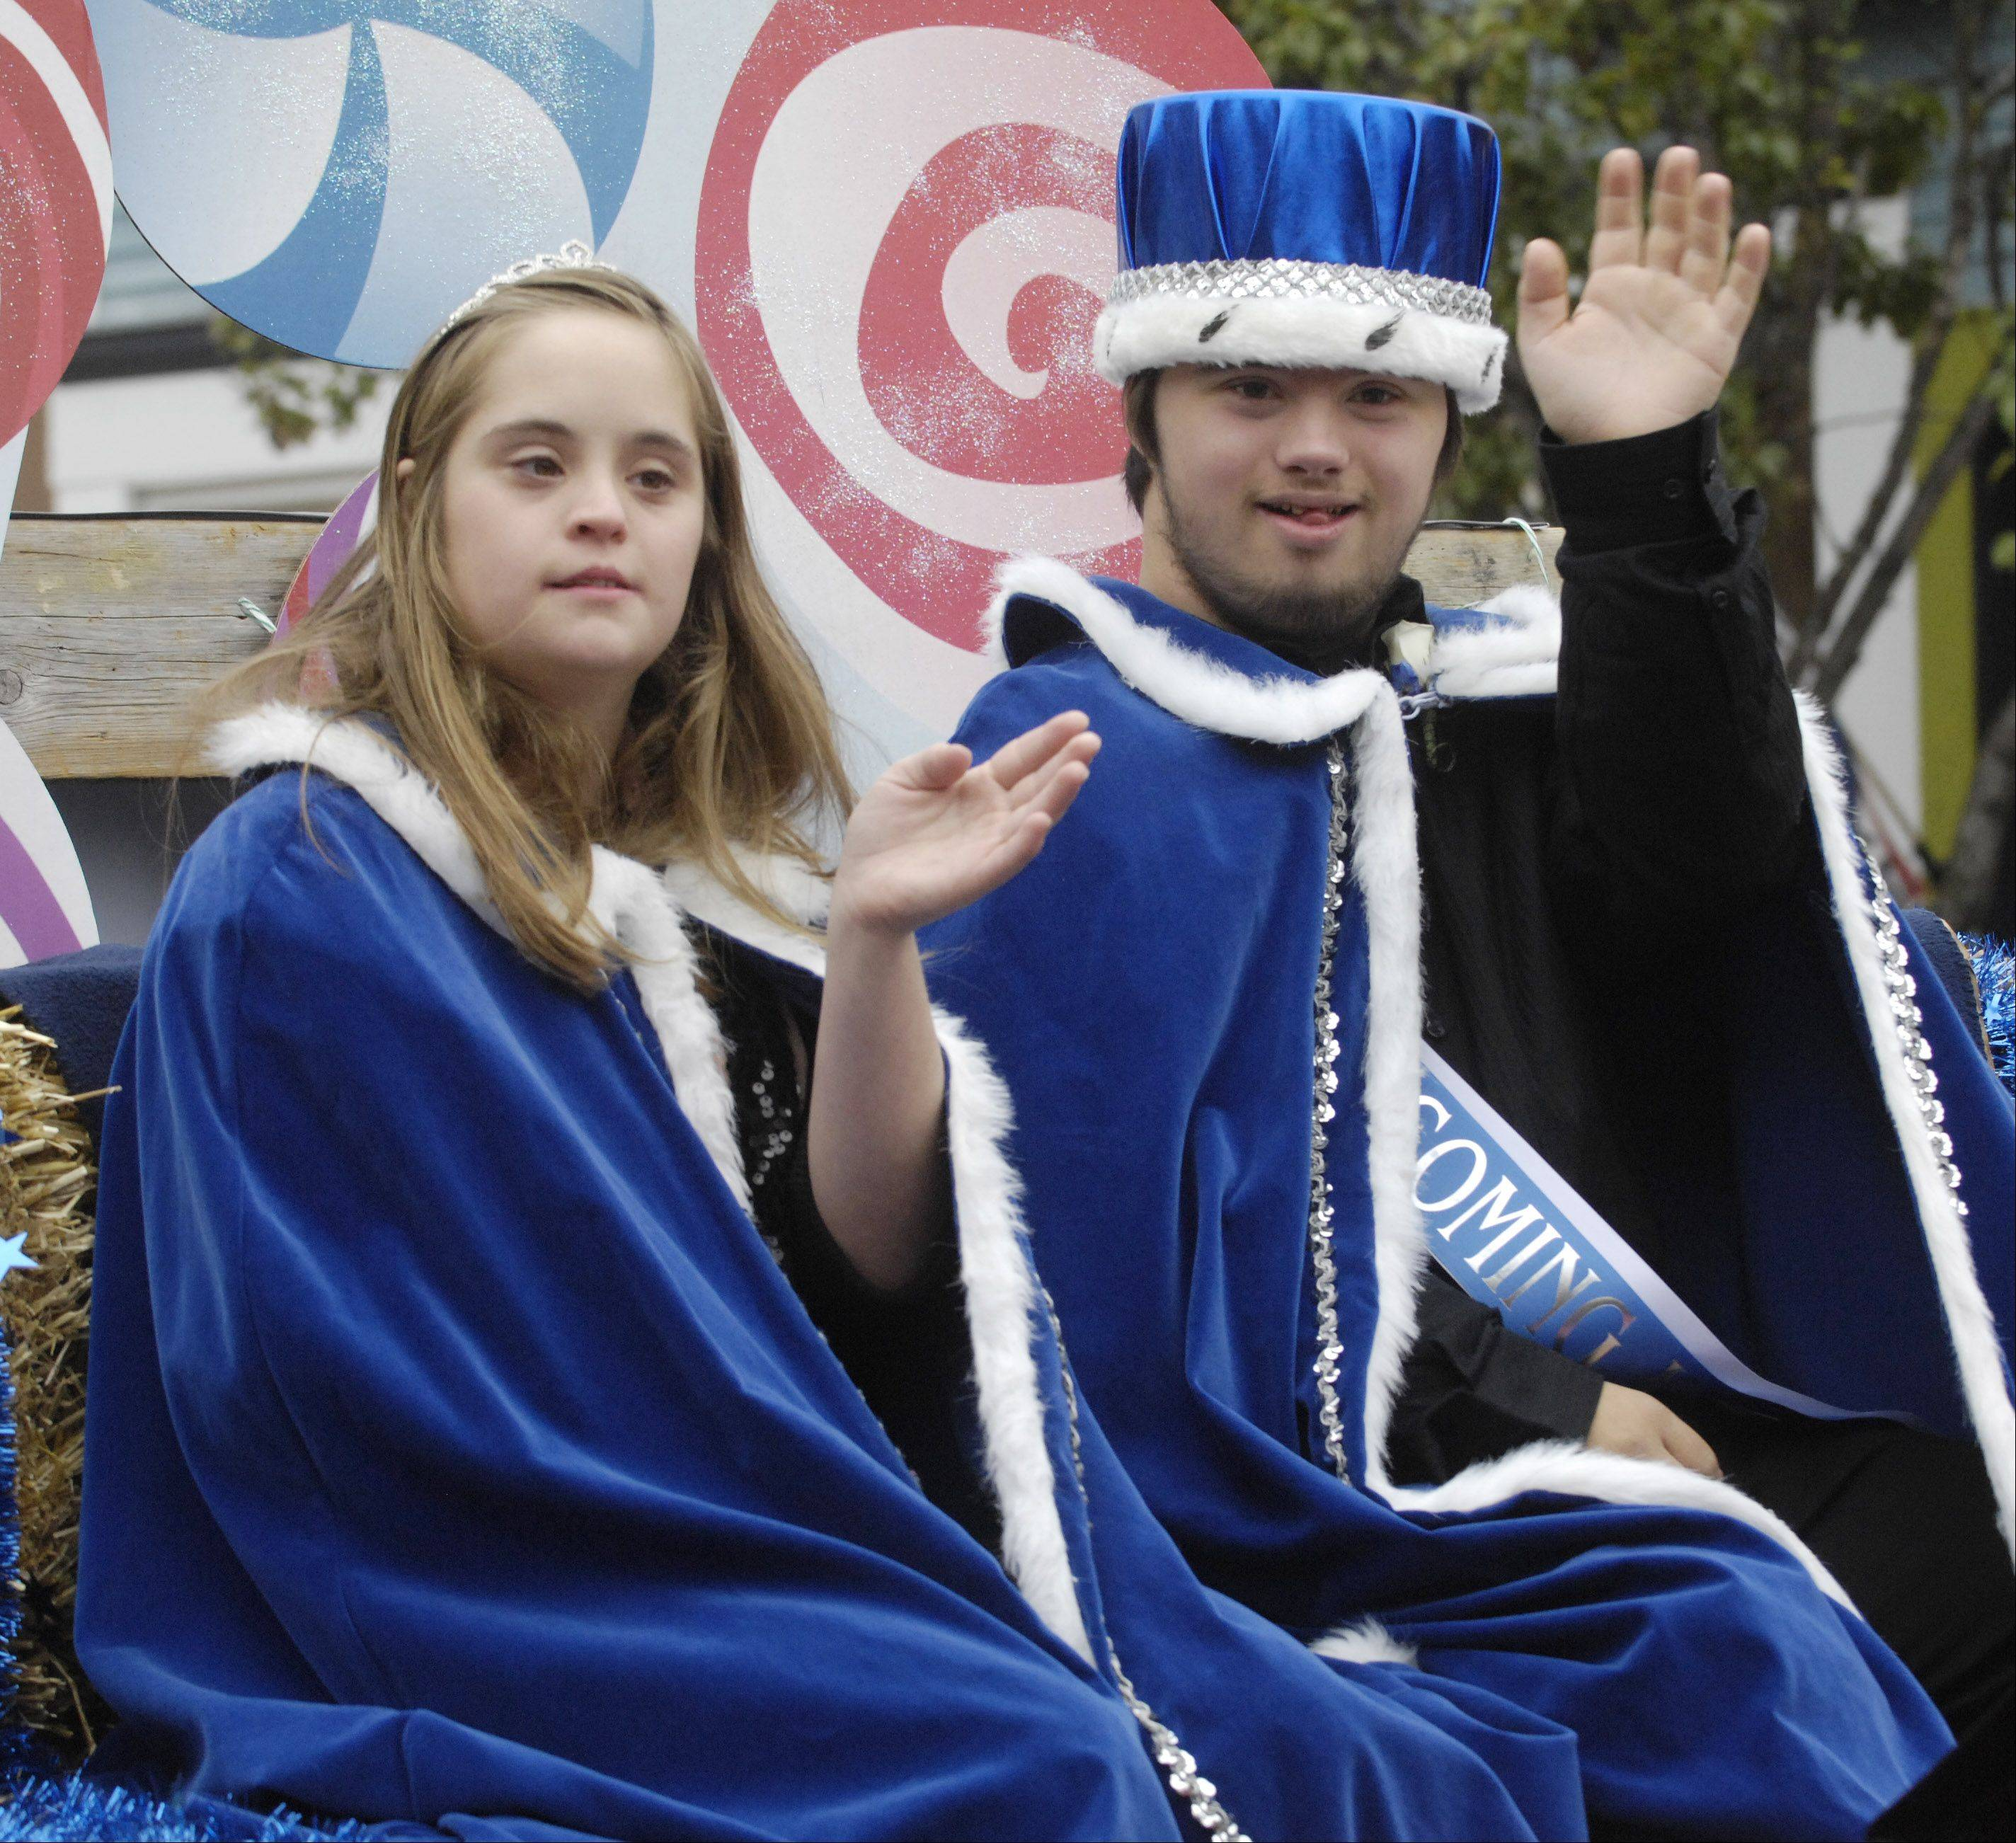 Homecoming queen Krissy Altersohn, left, and king Thomas Broviak ride on a float during Geneva High School's Homecoming parade.